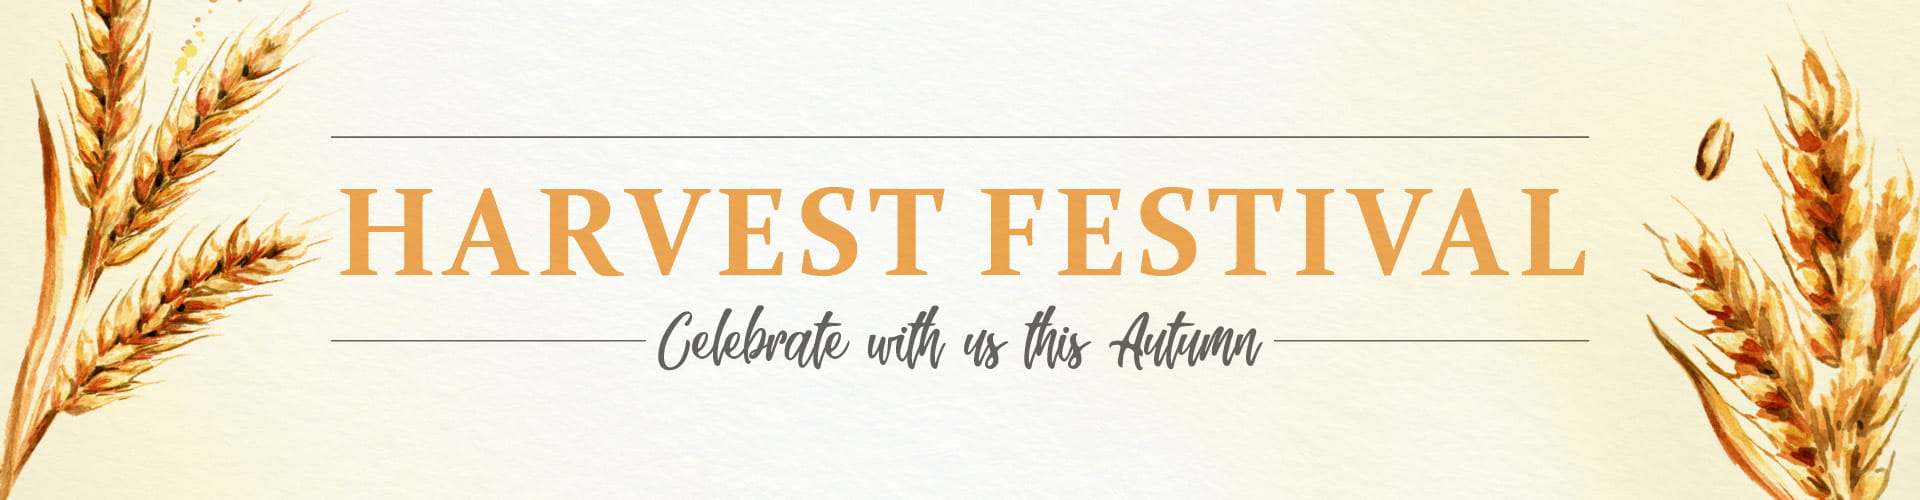 Harvest Festival - Celebrate with us this Autumn